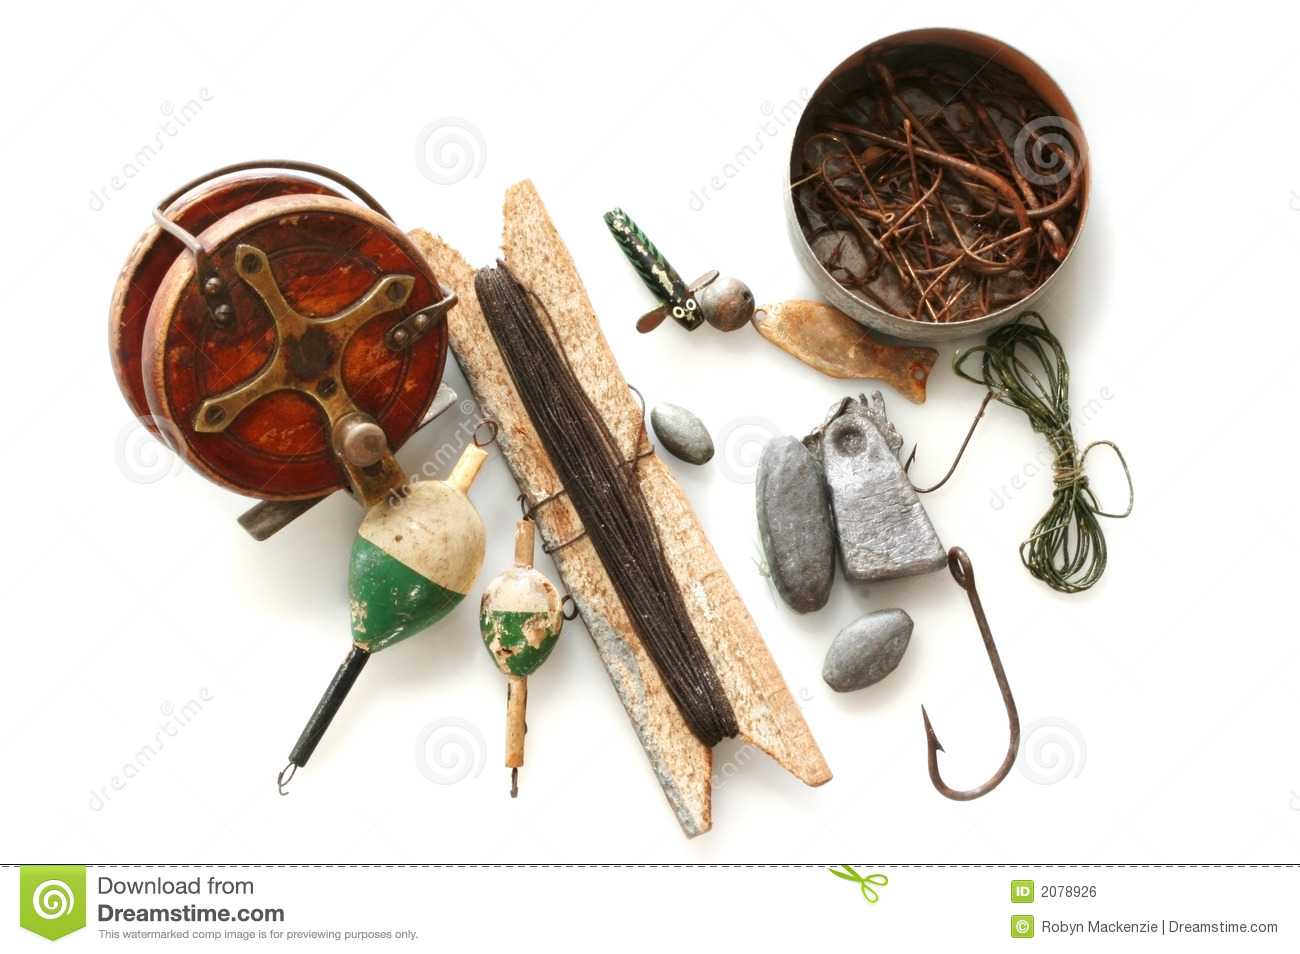 Vintage fishing tackle royalty free stock image image for Vintage fishing rod identification